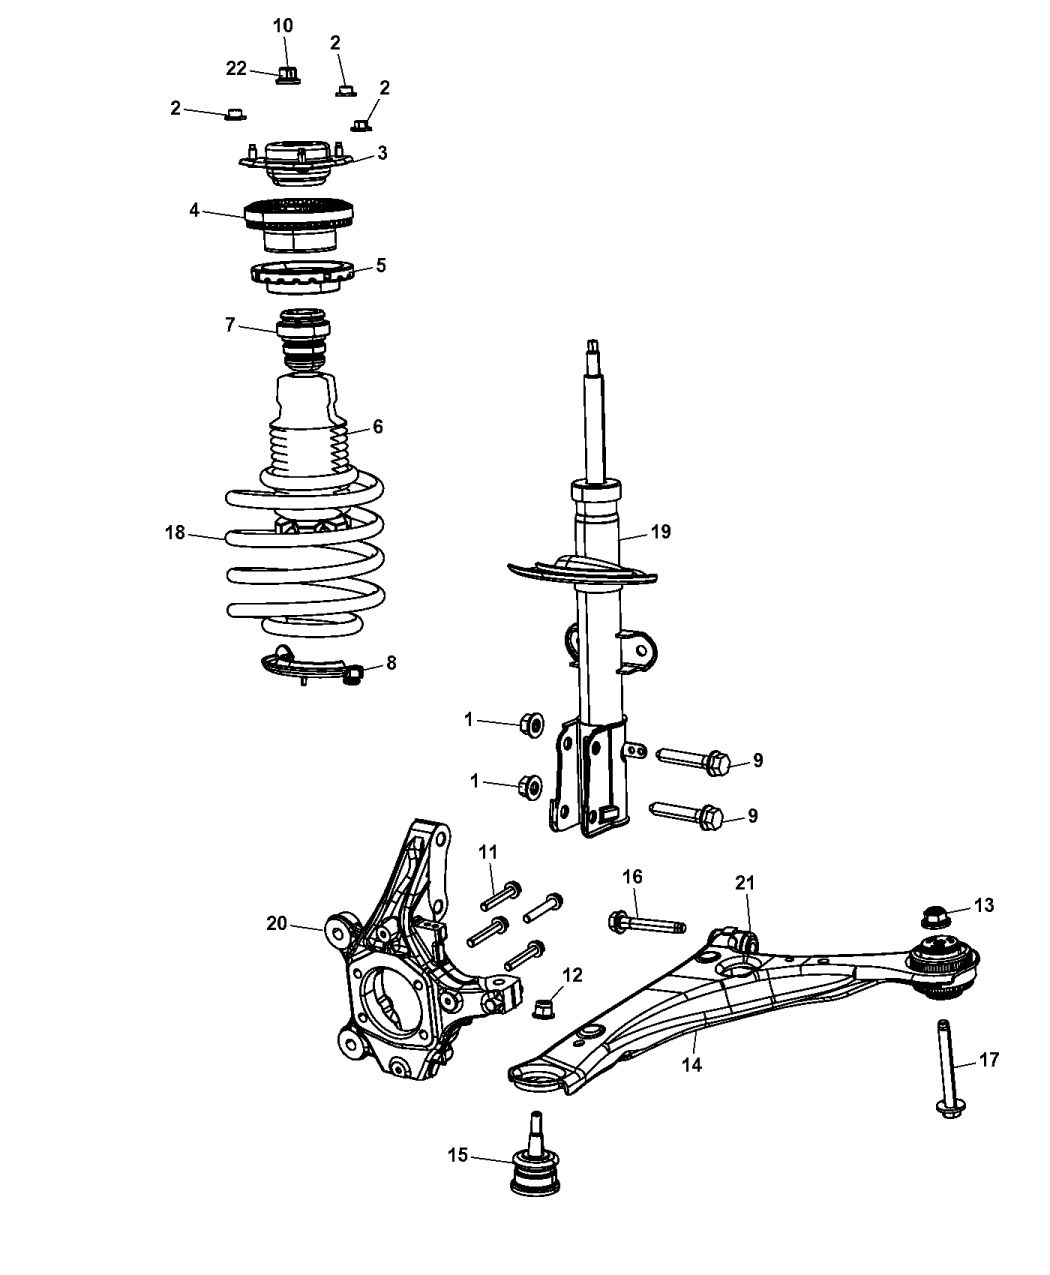 4721547AC  Genuine Mopar MOUNTSTRUT